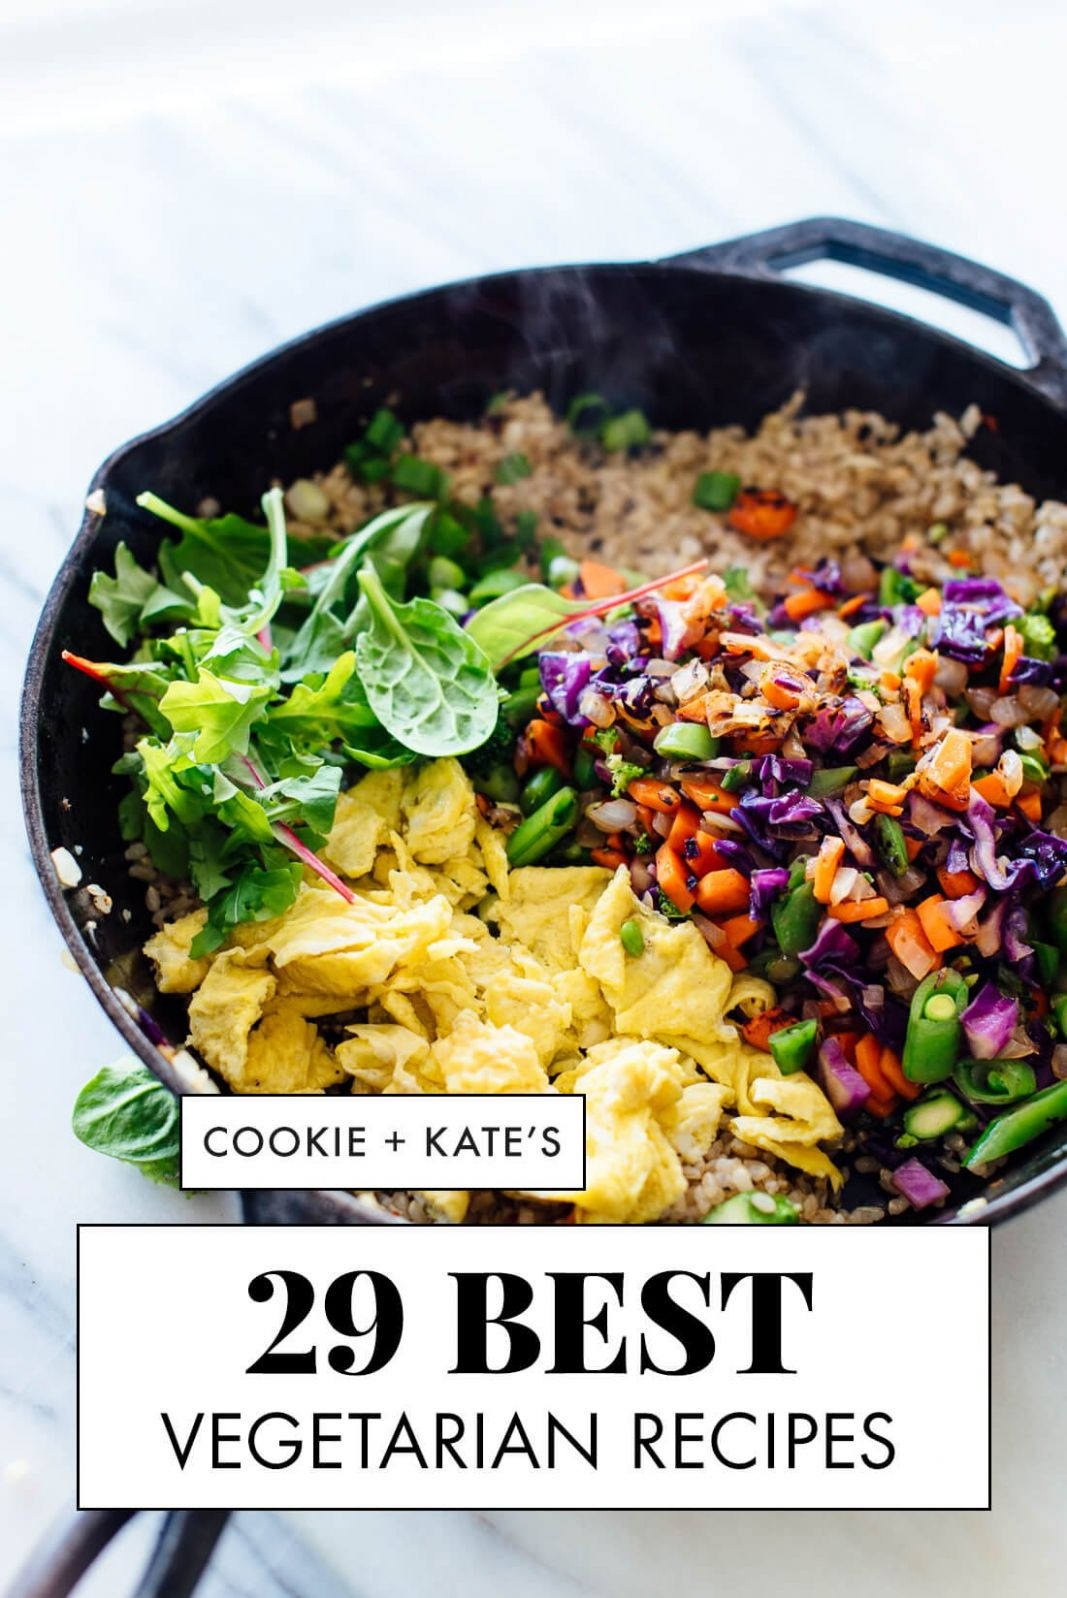 8 Best Vegetarian Recipes - Cookie and Kate - Vegetarian Recipes Quick And Easy